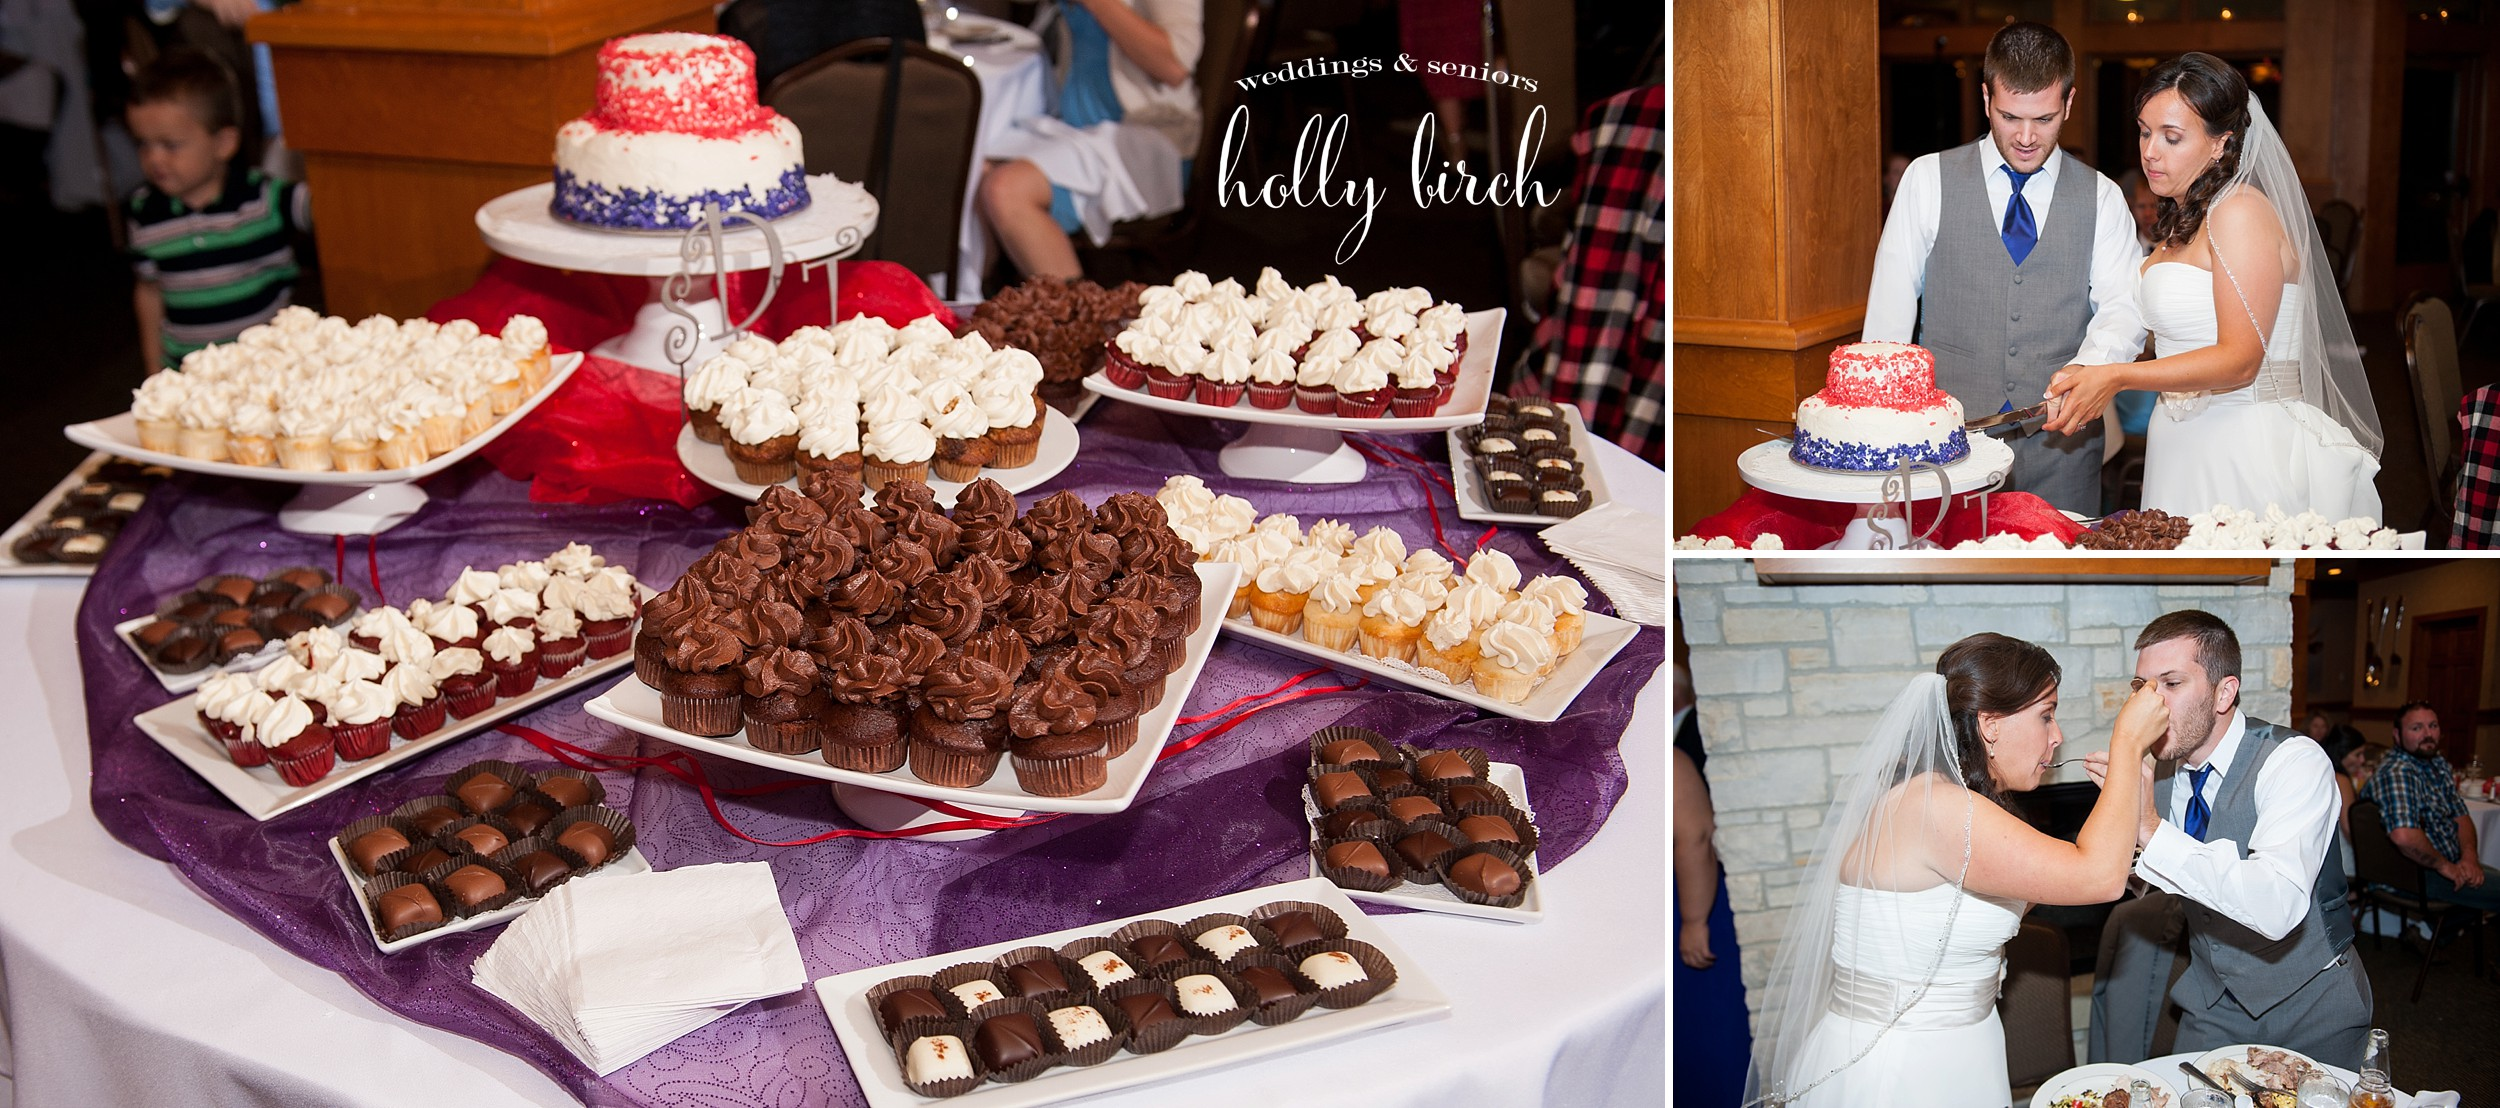 wedding cupcakes and chocolate confections